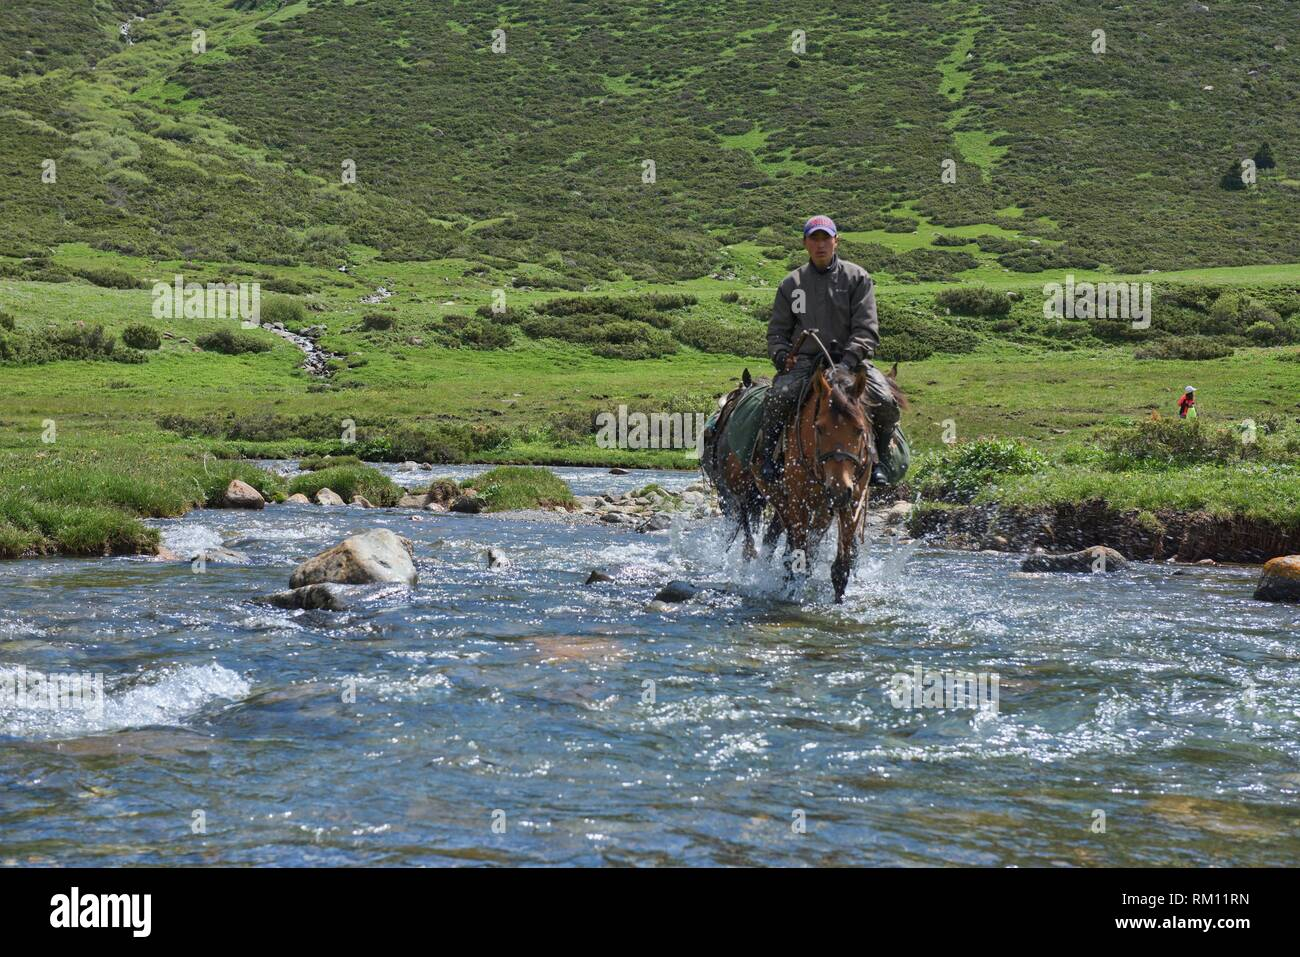 Kyrgyz horserider crossing the Tup River, Jyrgalan Valley, Kygyzstan. Stock Photo